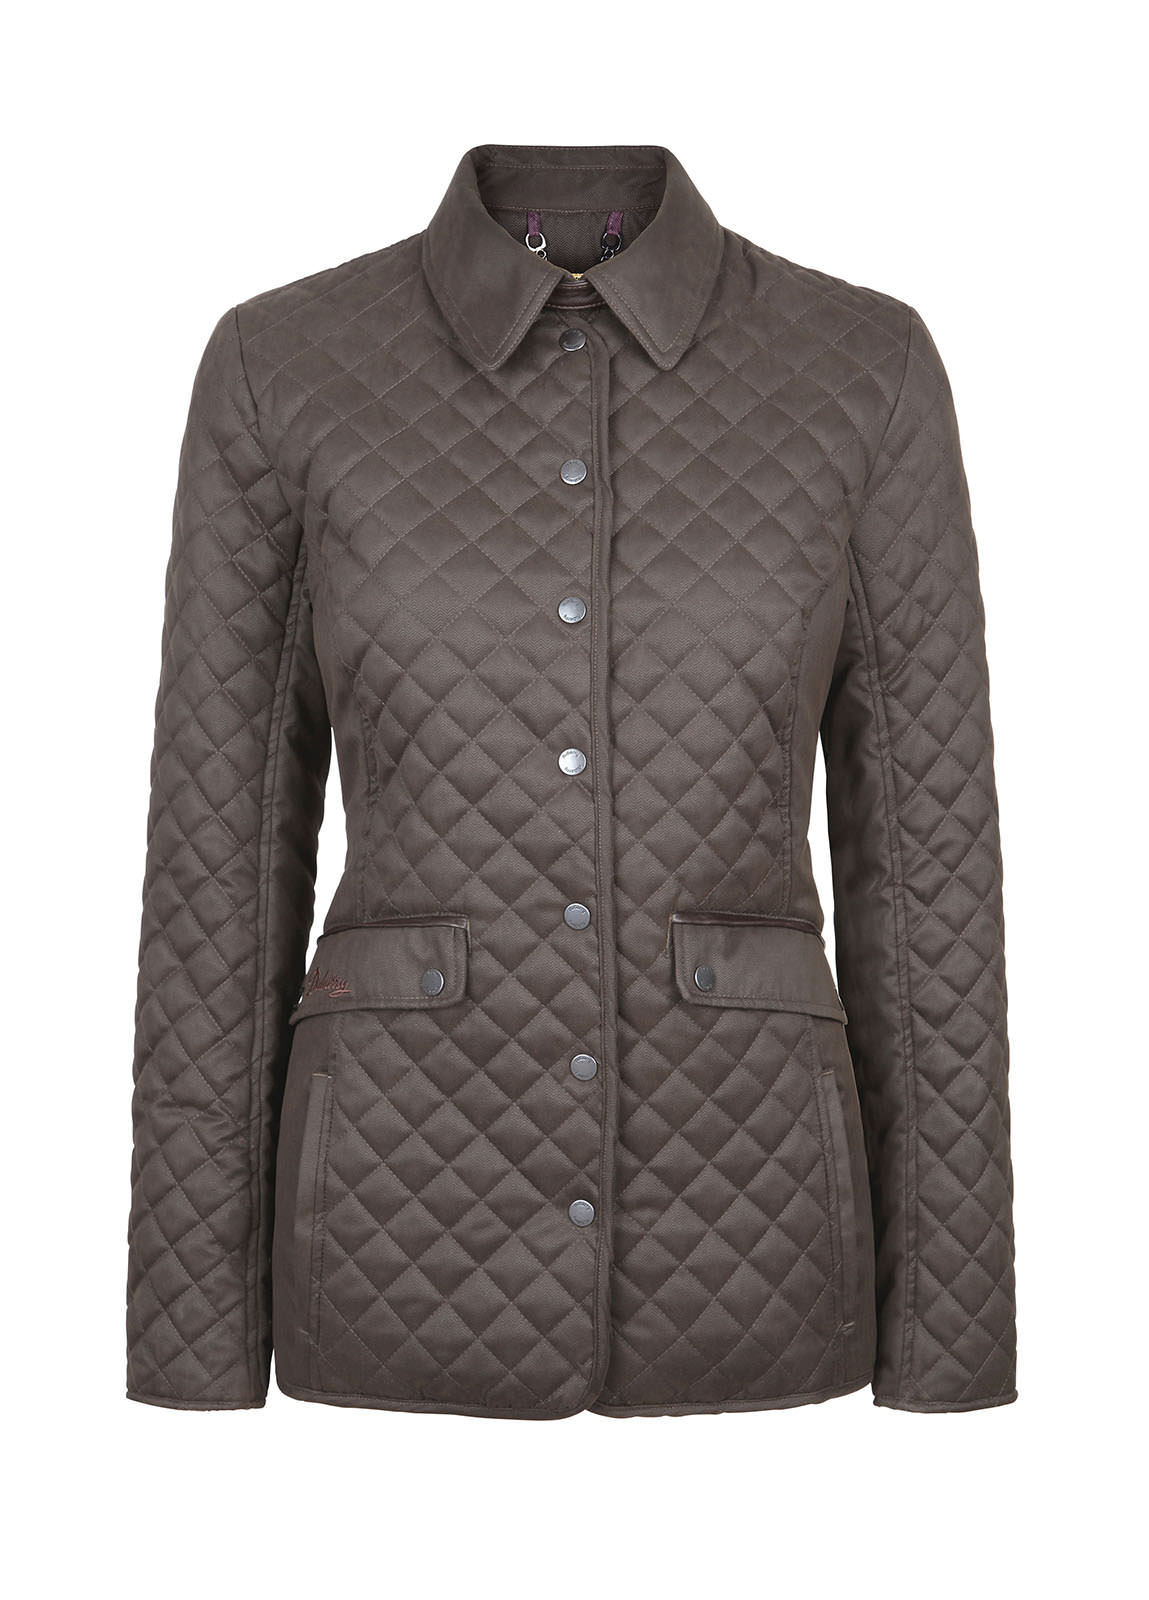 Dubarry_ Shaw Women's Quilted Jacket - Verdigris_Image_2